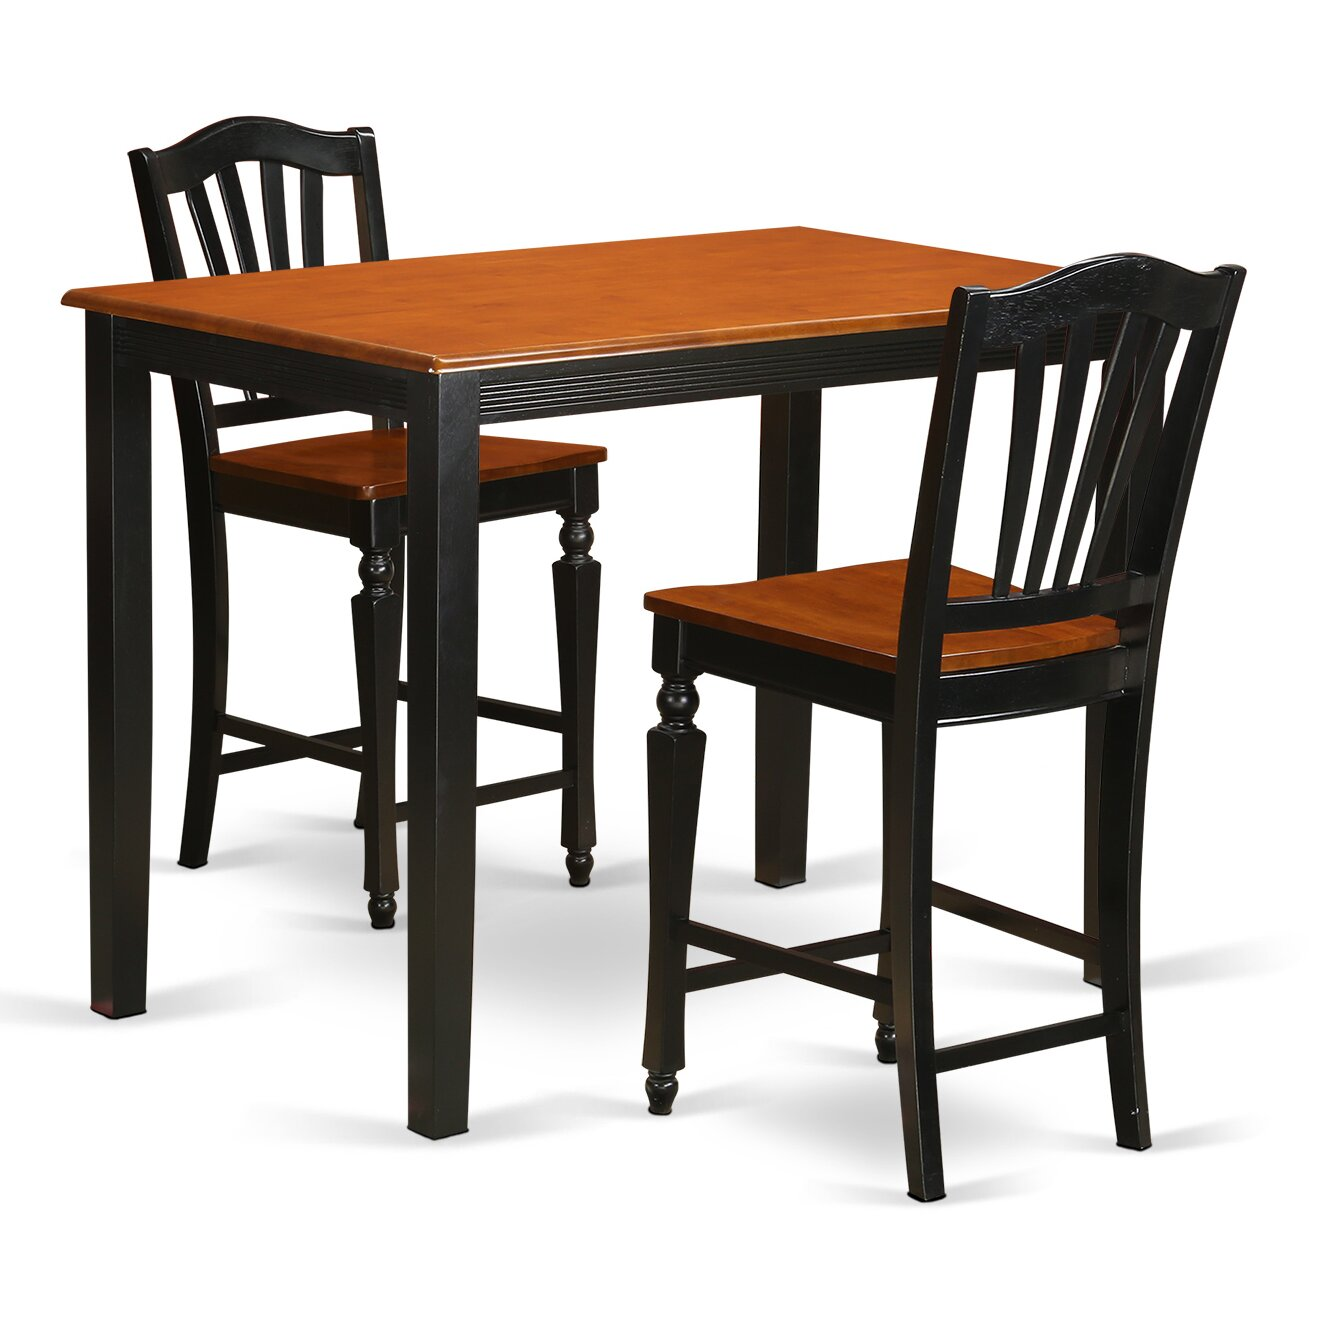 East West Yarmouth 3 Piece Counter Height Pub Table Set